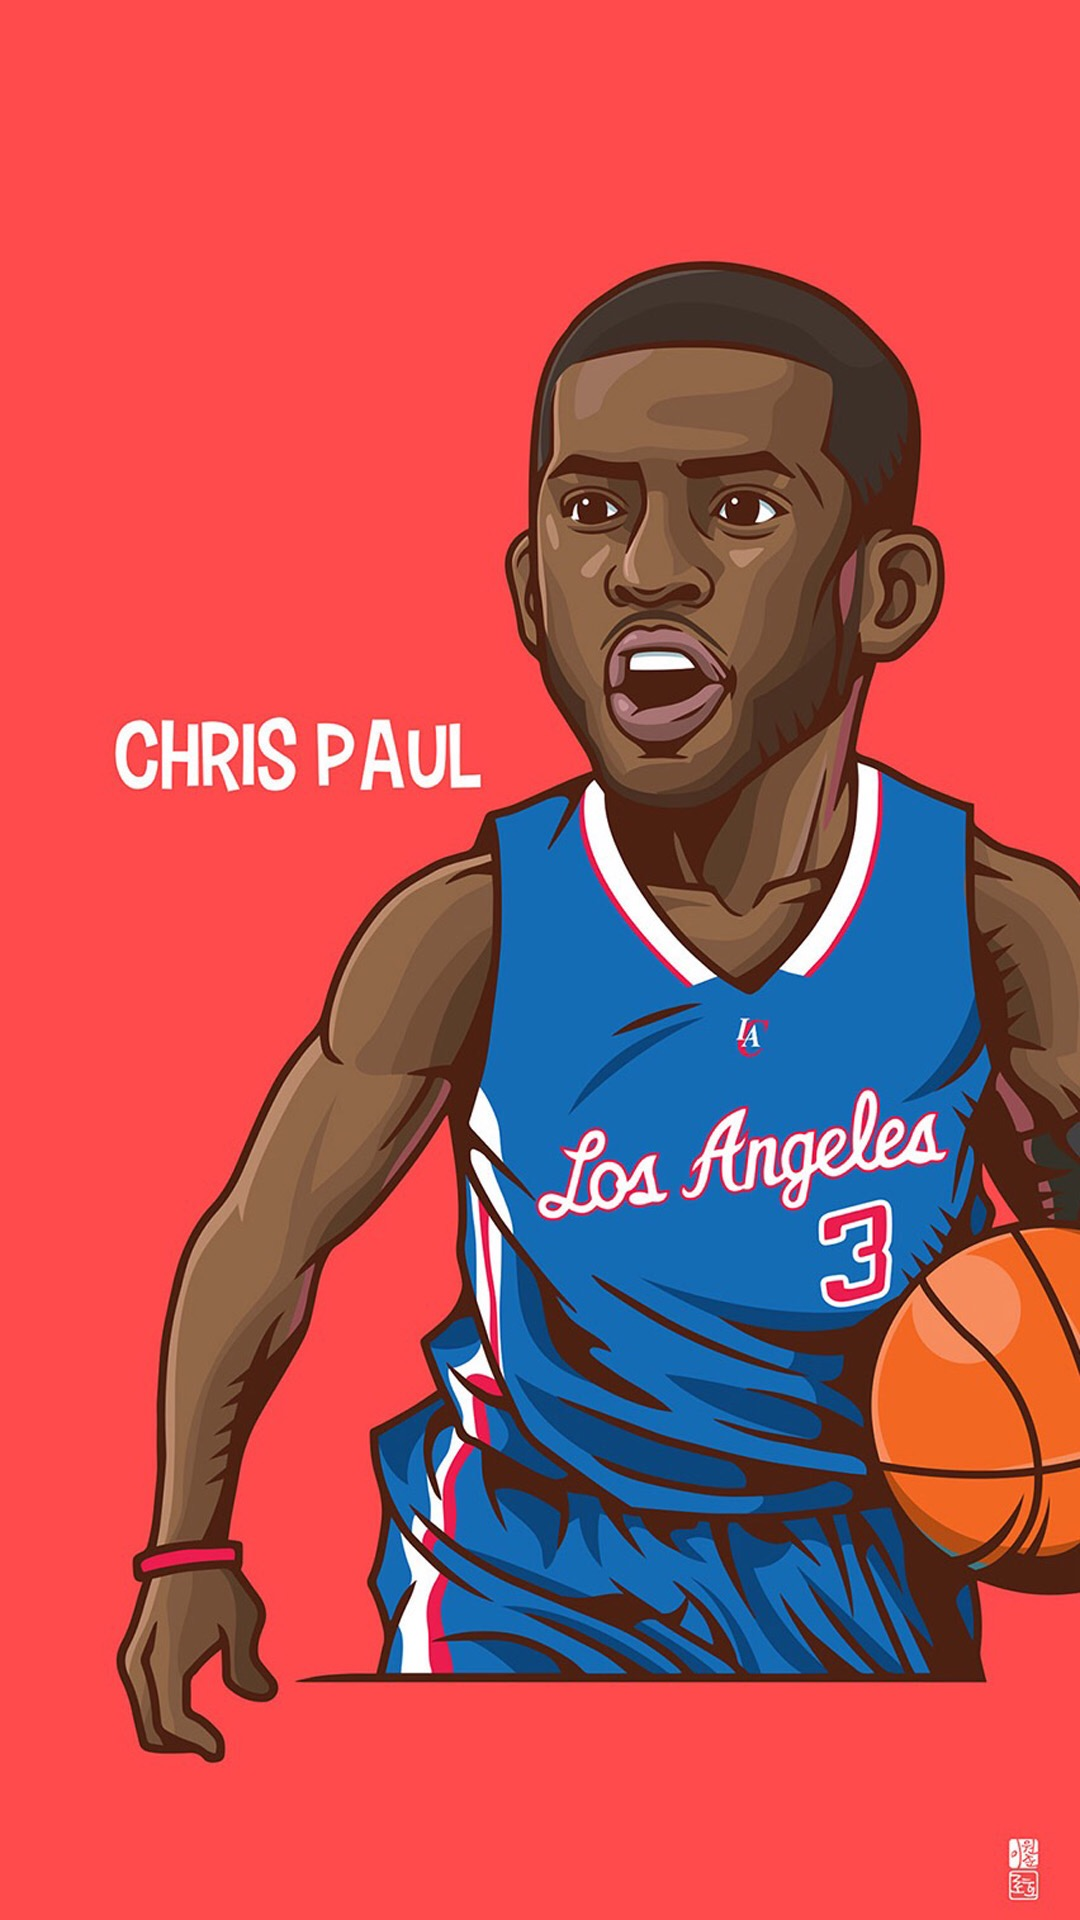 Chris-Paul-1080-x-1920-disponible-para-su-descarga-gratuita-wallpaper-wpc5803452